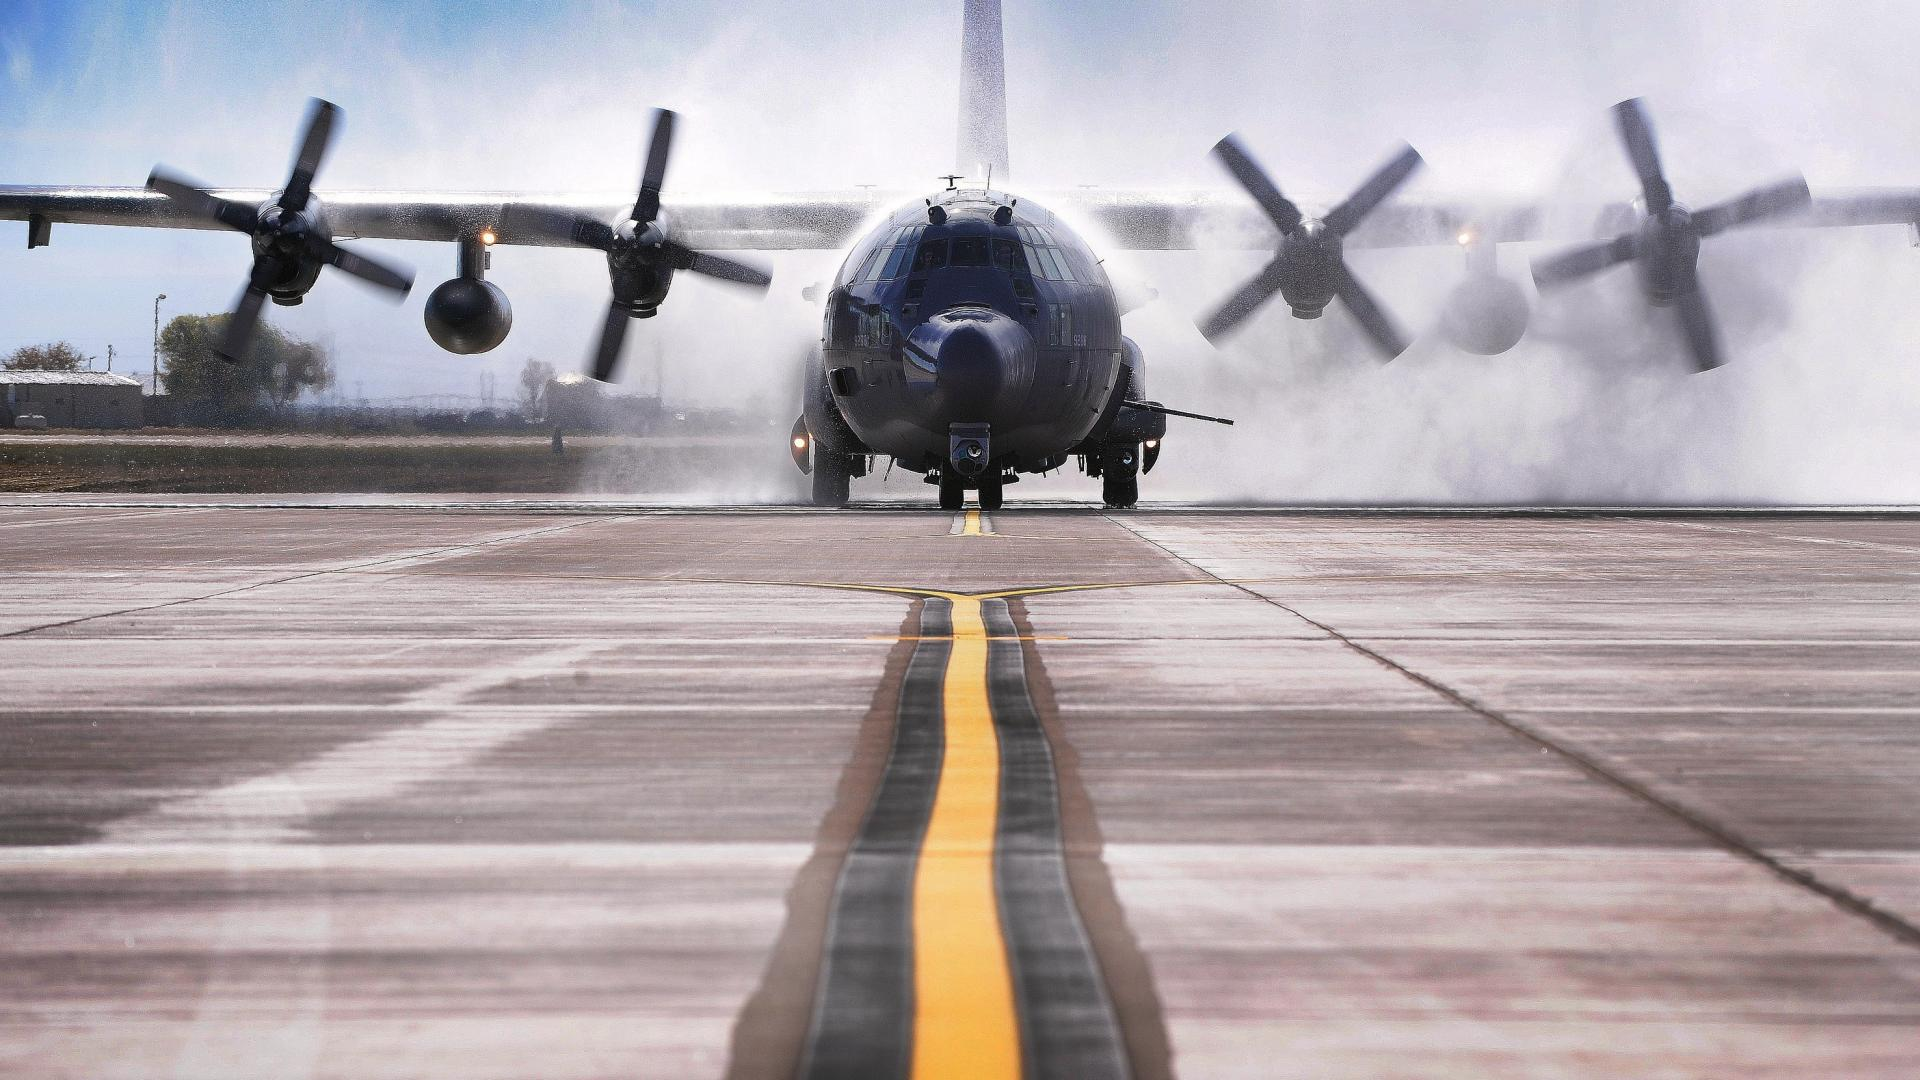 130 spookyspectre c 130 hercules aviation ac 130u wallpaper 70187 1920x1080